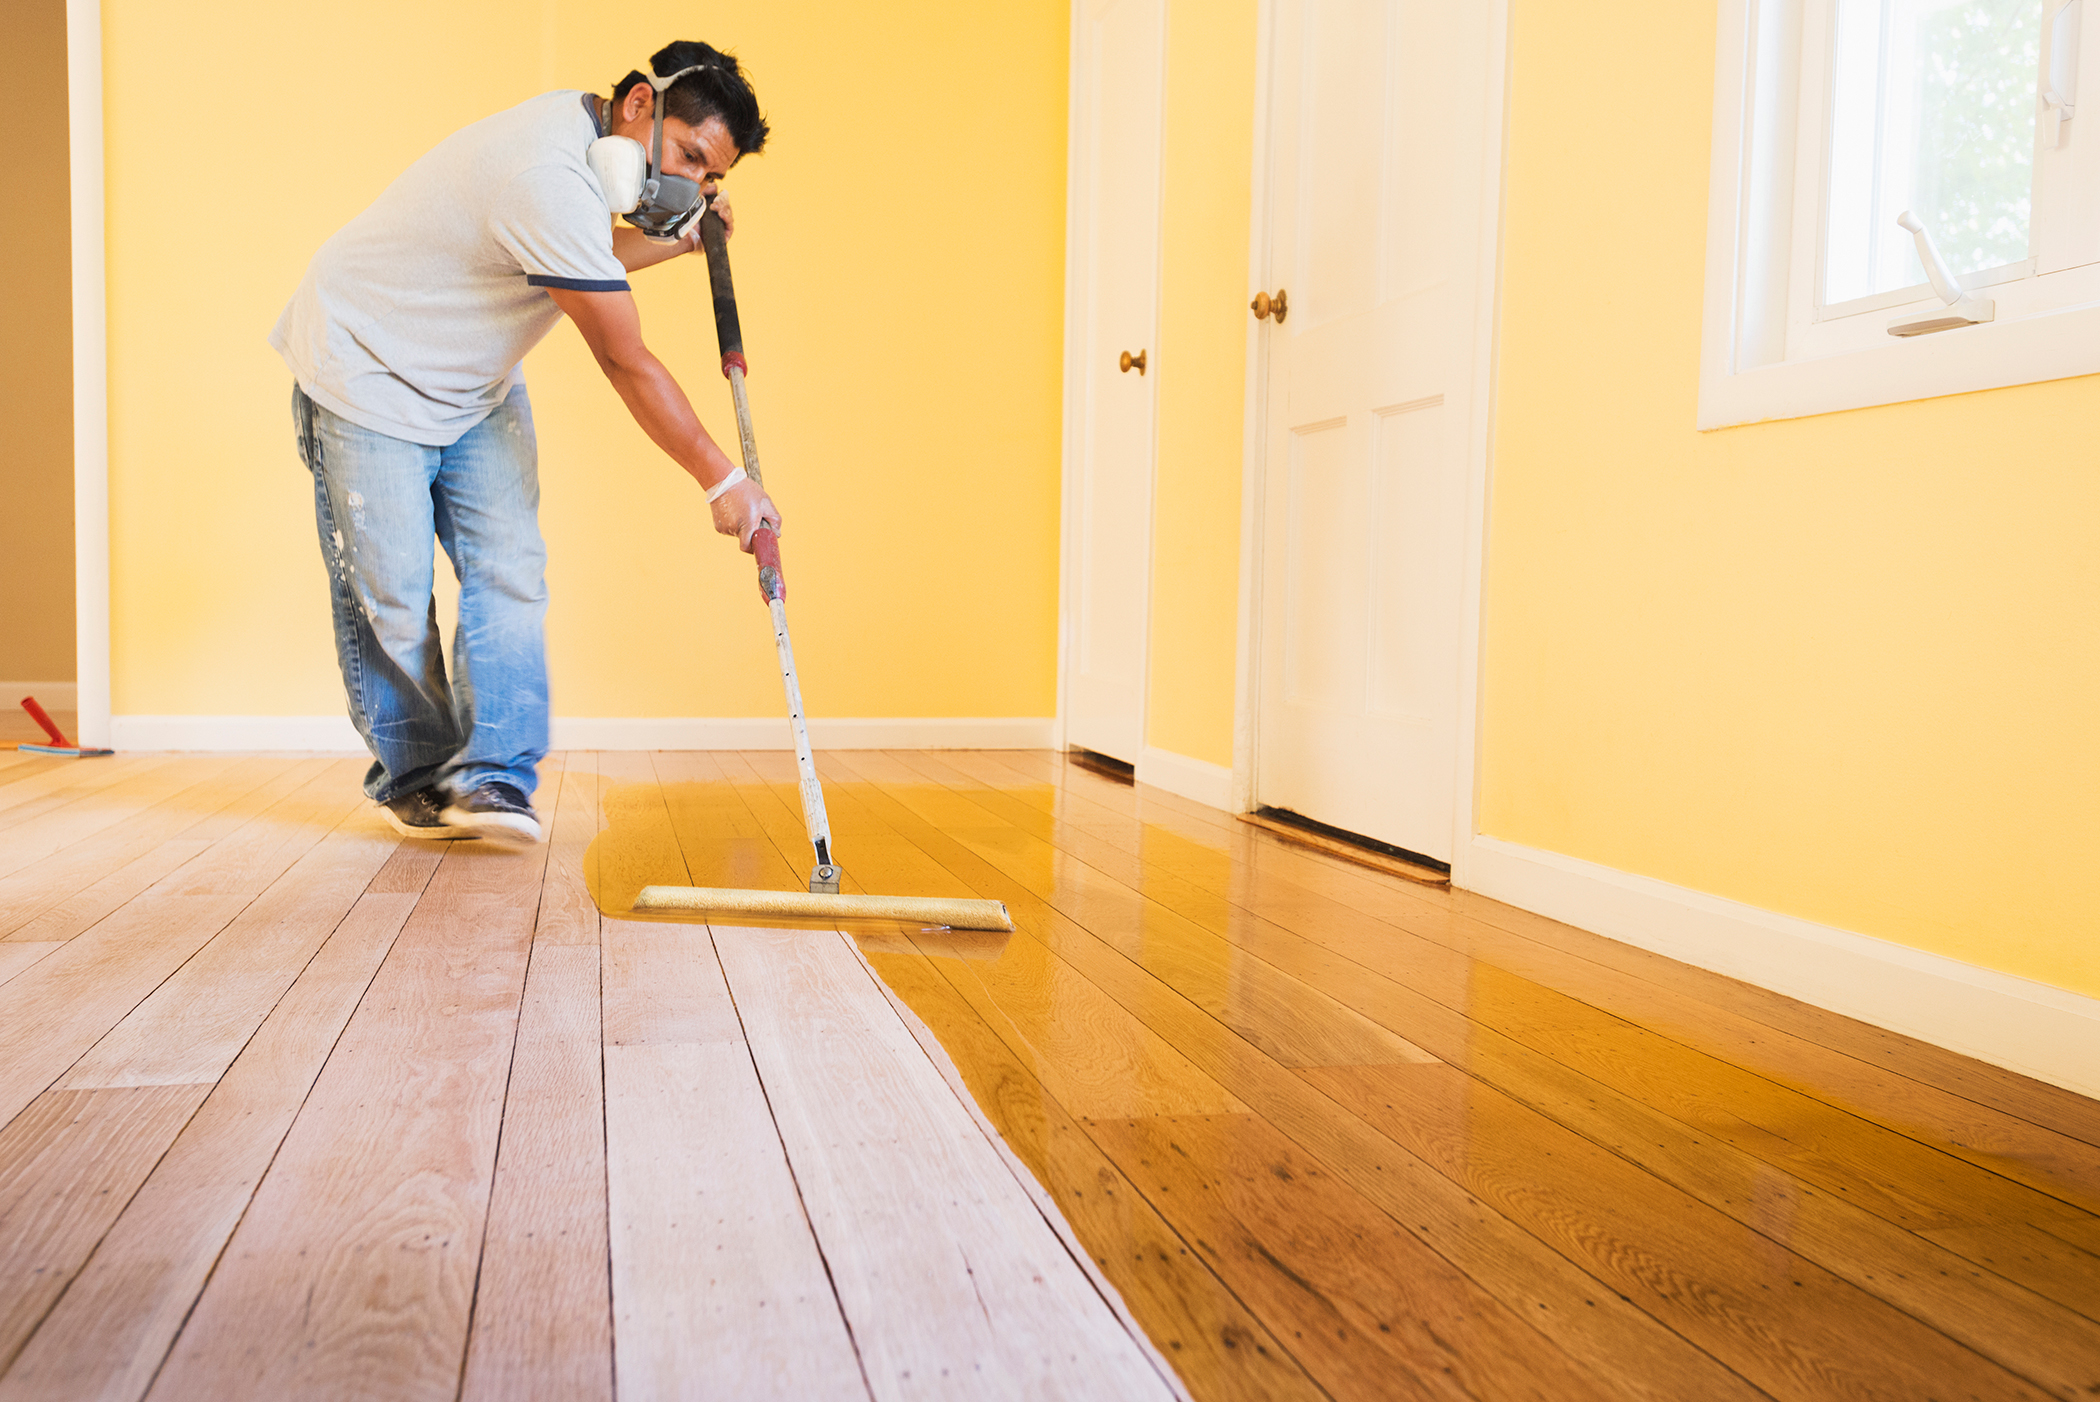 Refinishing Wood Floors 5 Things To Know Money,Dog Licking Paws Red